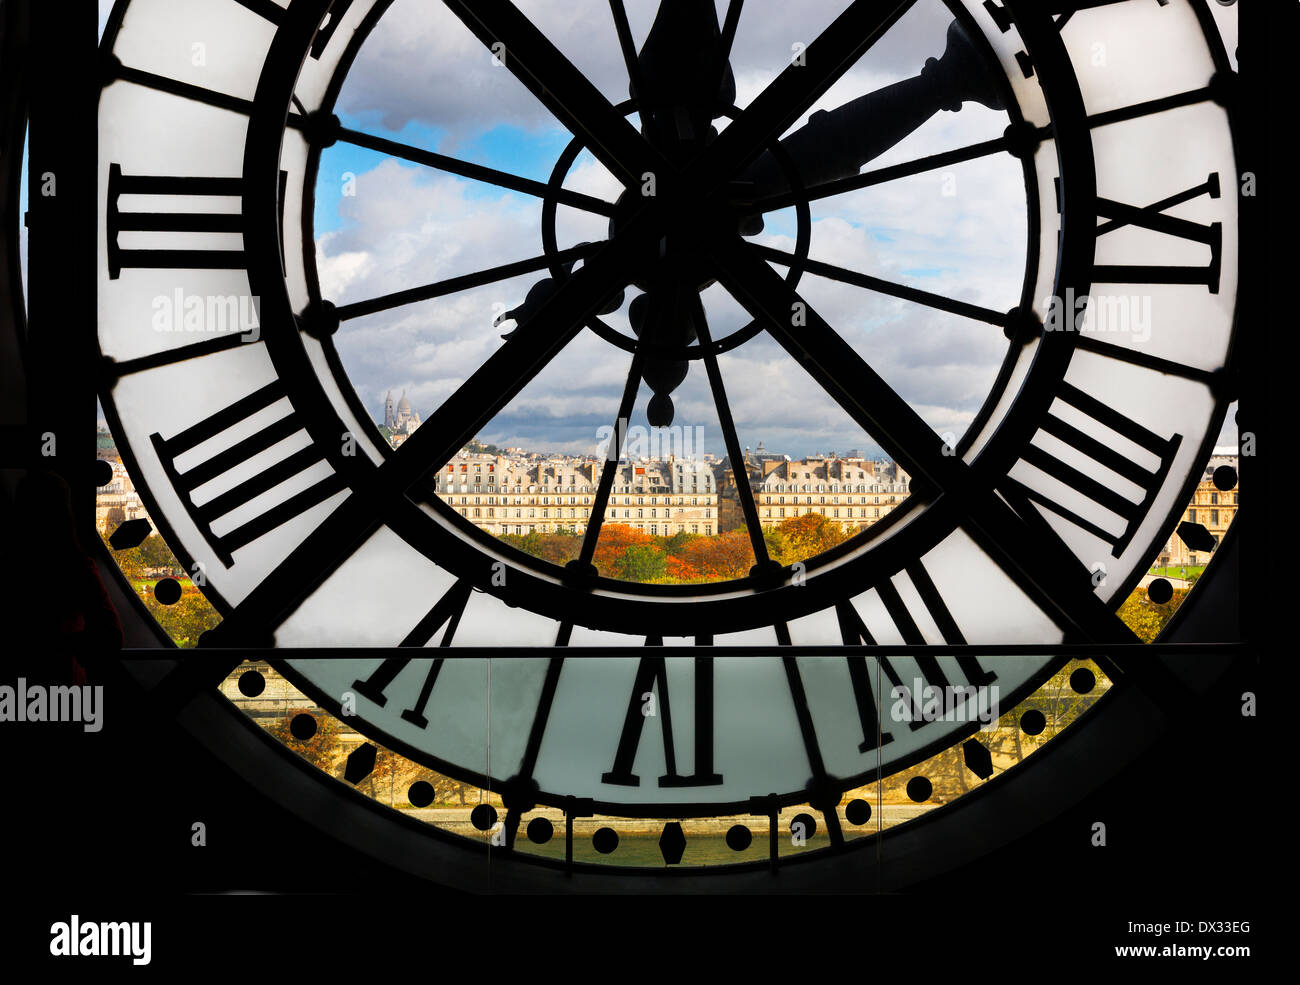 View through giant clock in Musee d' Orsay, Paris, France - Stock Image